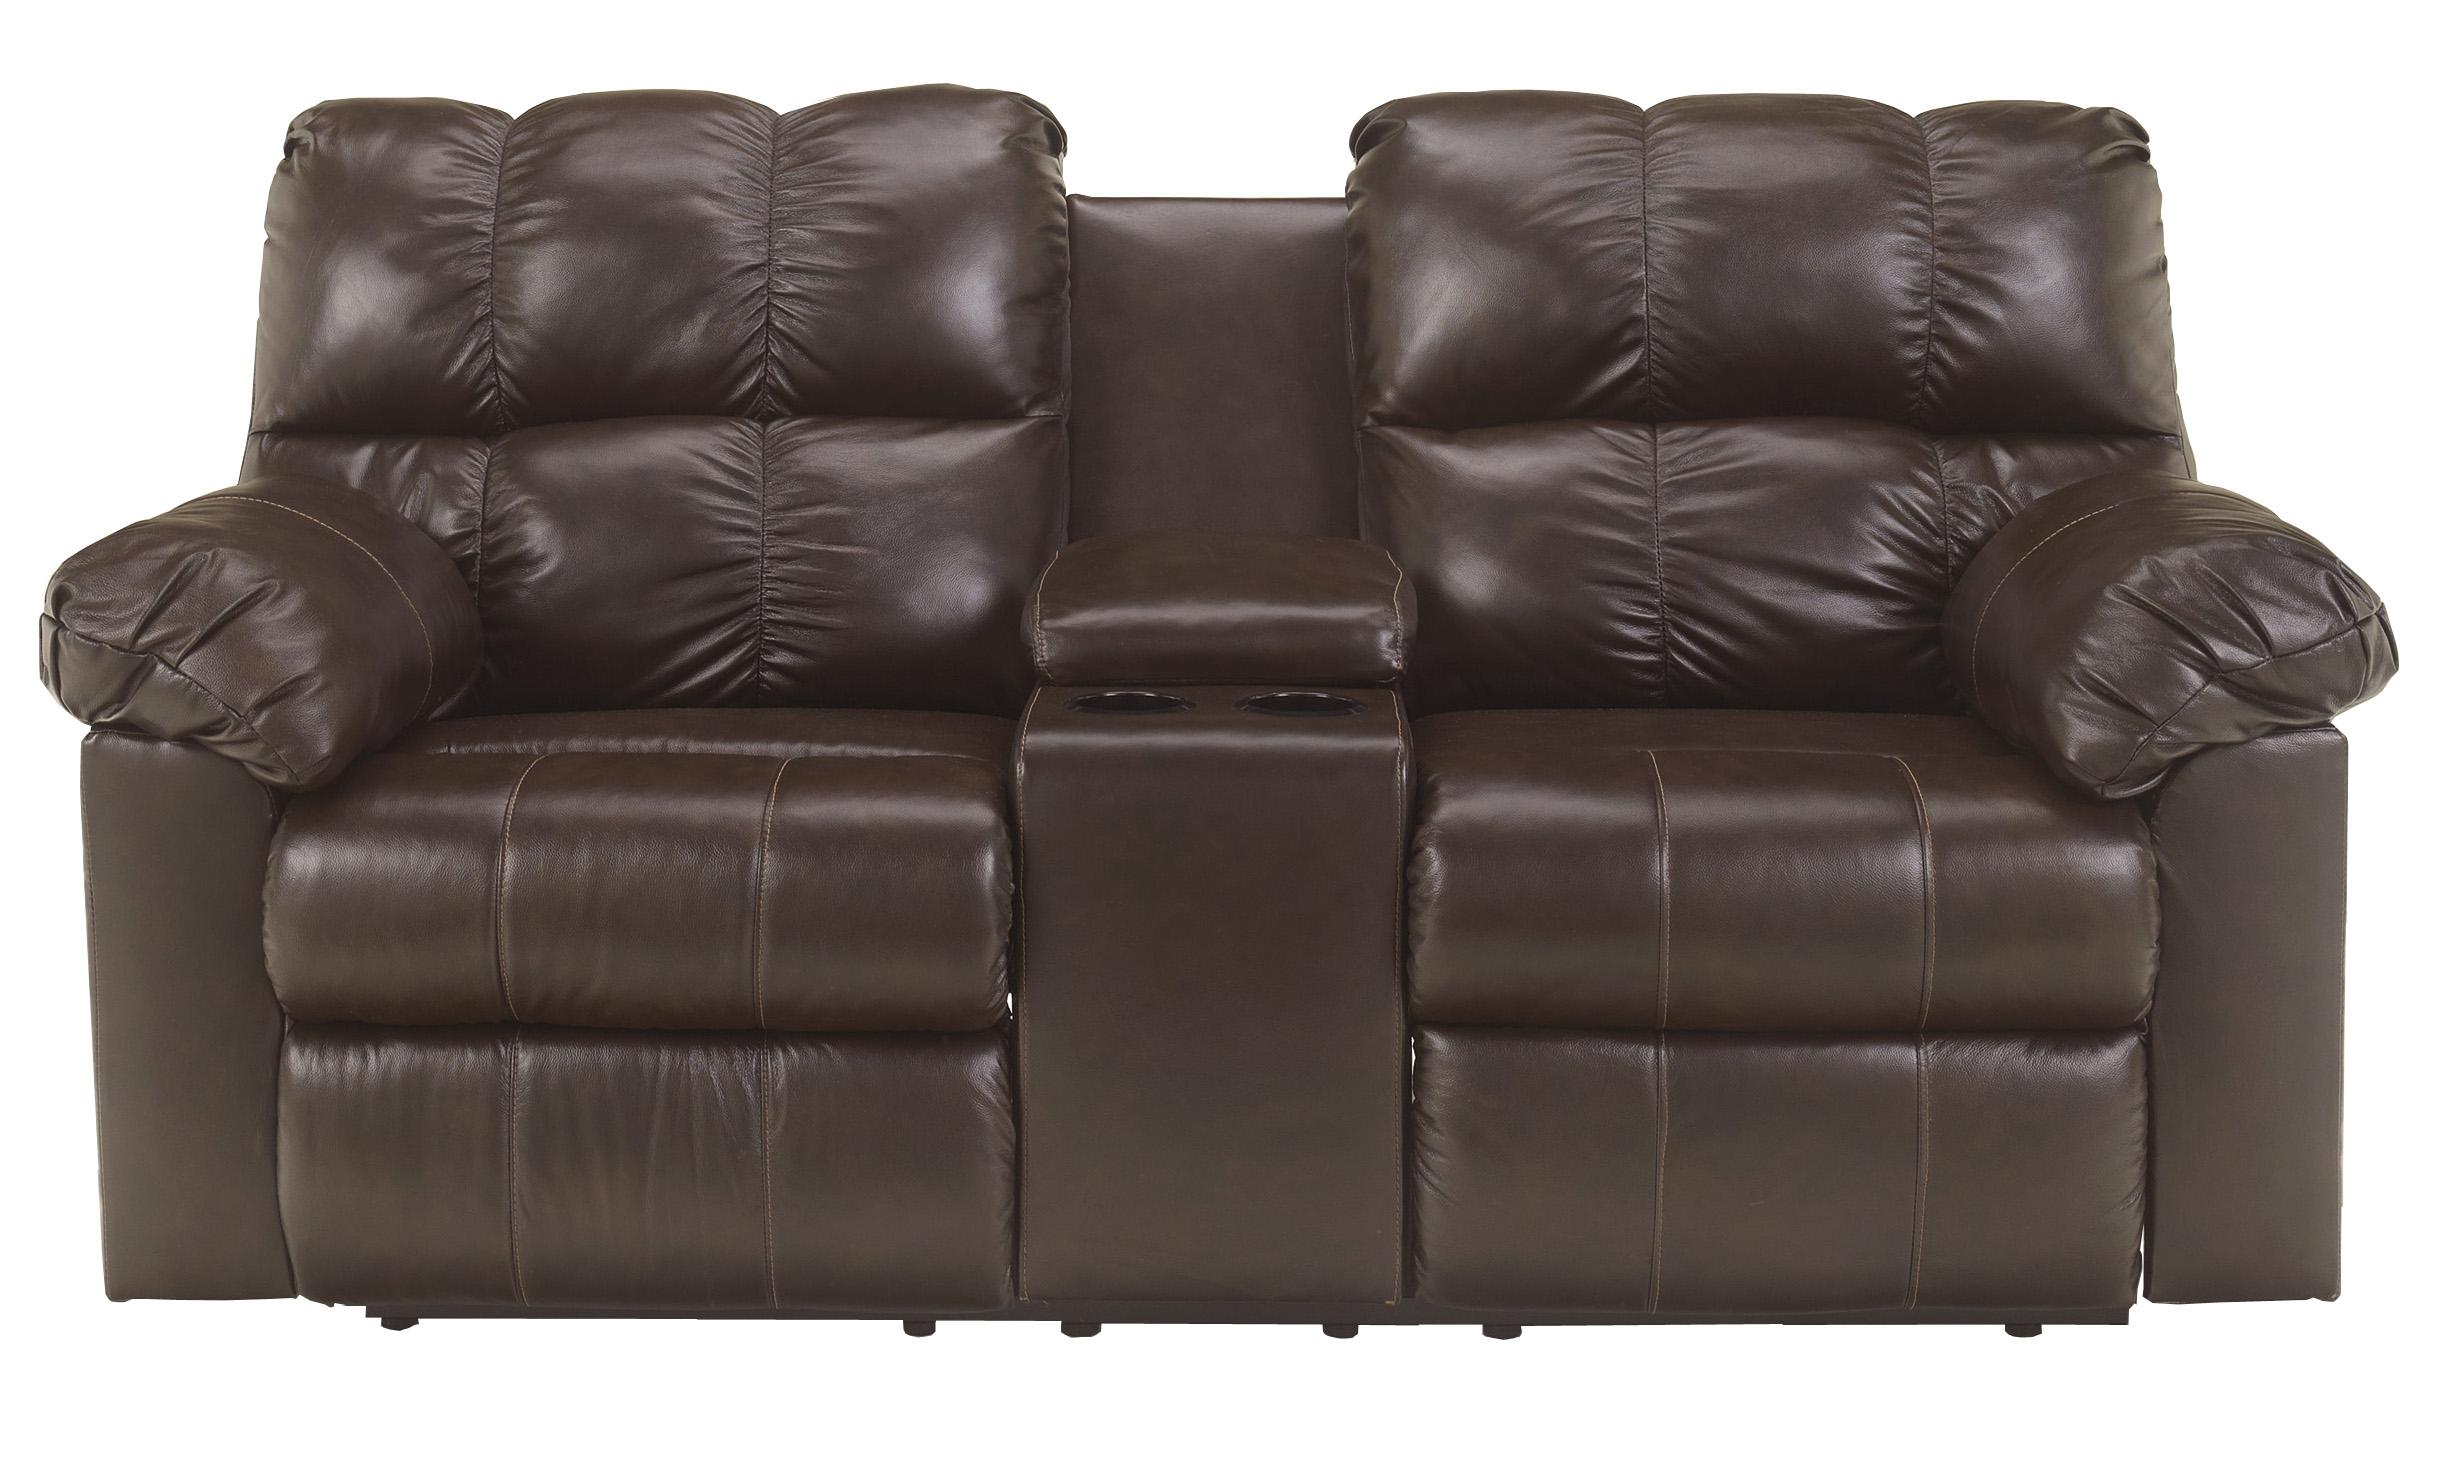 Signature Design by Ashley Kennard - Chocolate Dbl Rec Pwr Love Seat w/Console - Item Number: 2900196